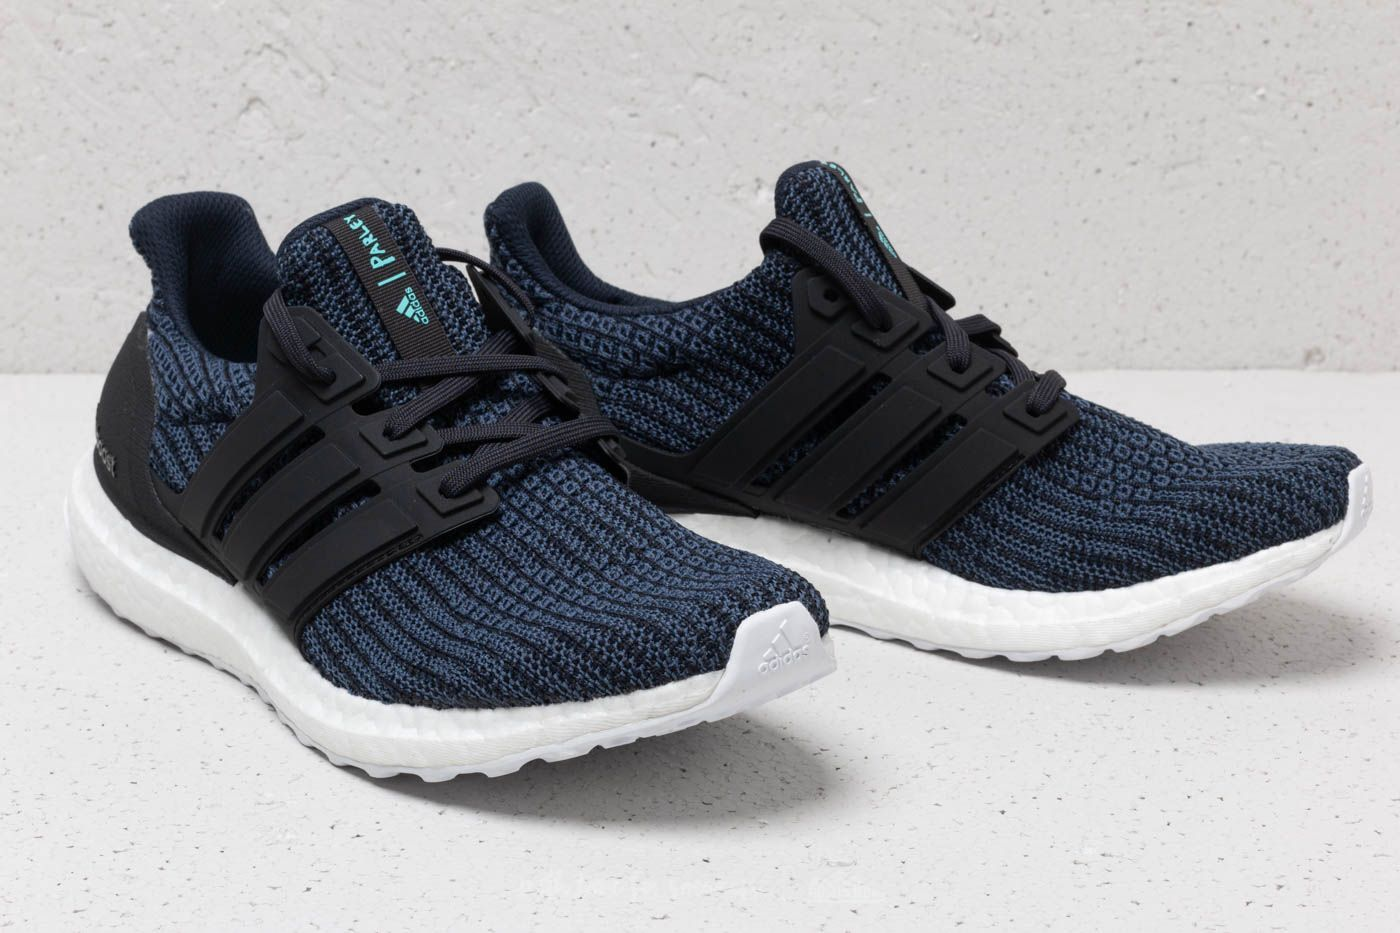 half off 4f073 f5eec adidas UltraBOOST W Parley Legend Ink/ Carbon/ Blue Spirit ...